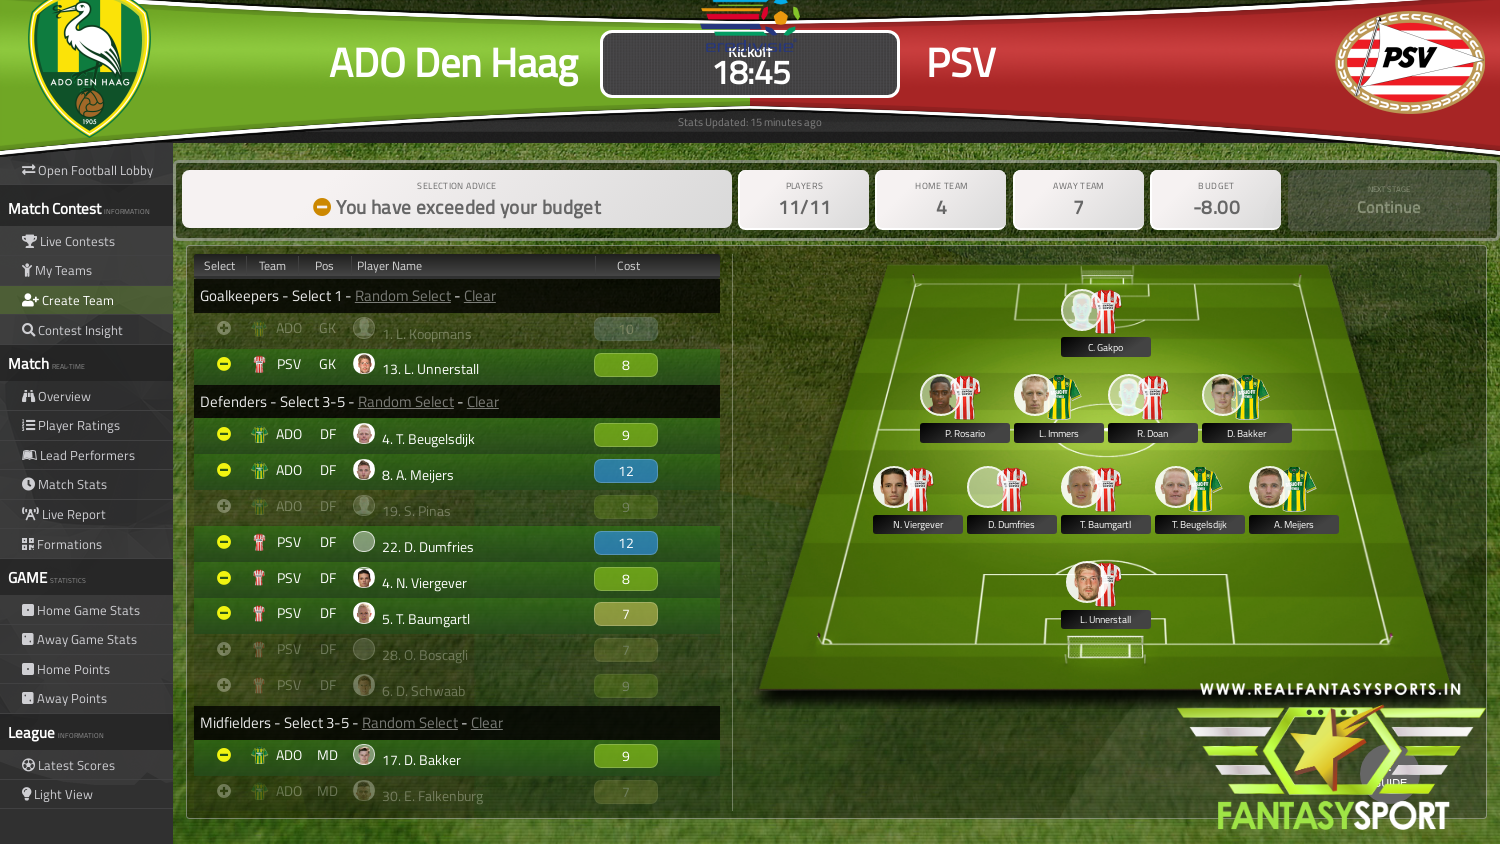 Fantasy Football Ado Den Haag Vs Psv Saturday 15th February 2020